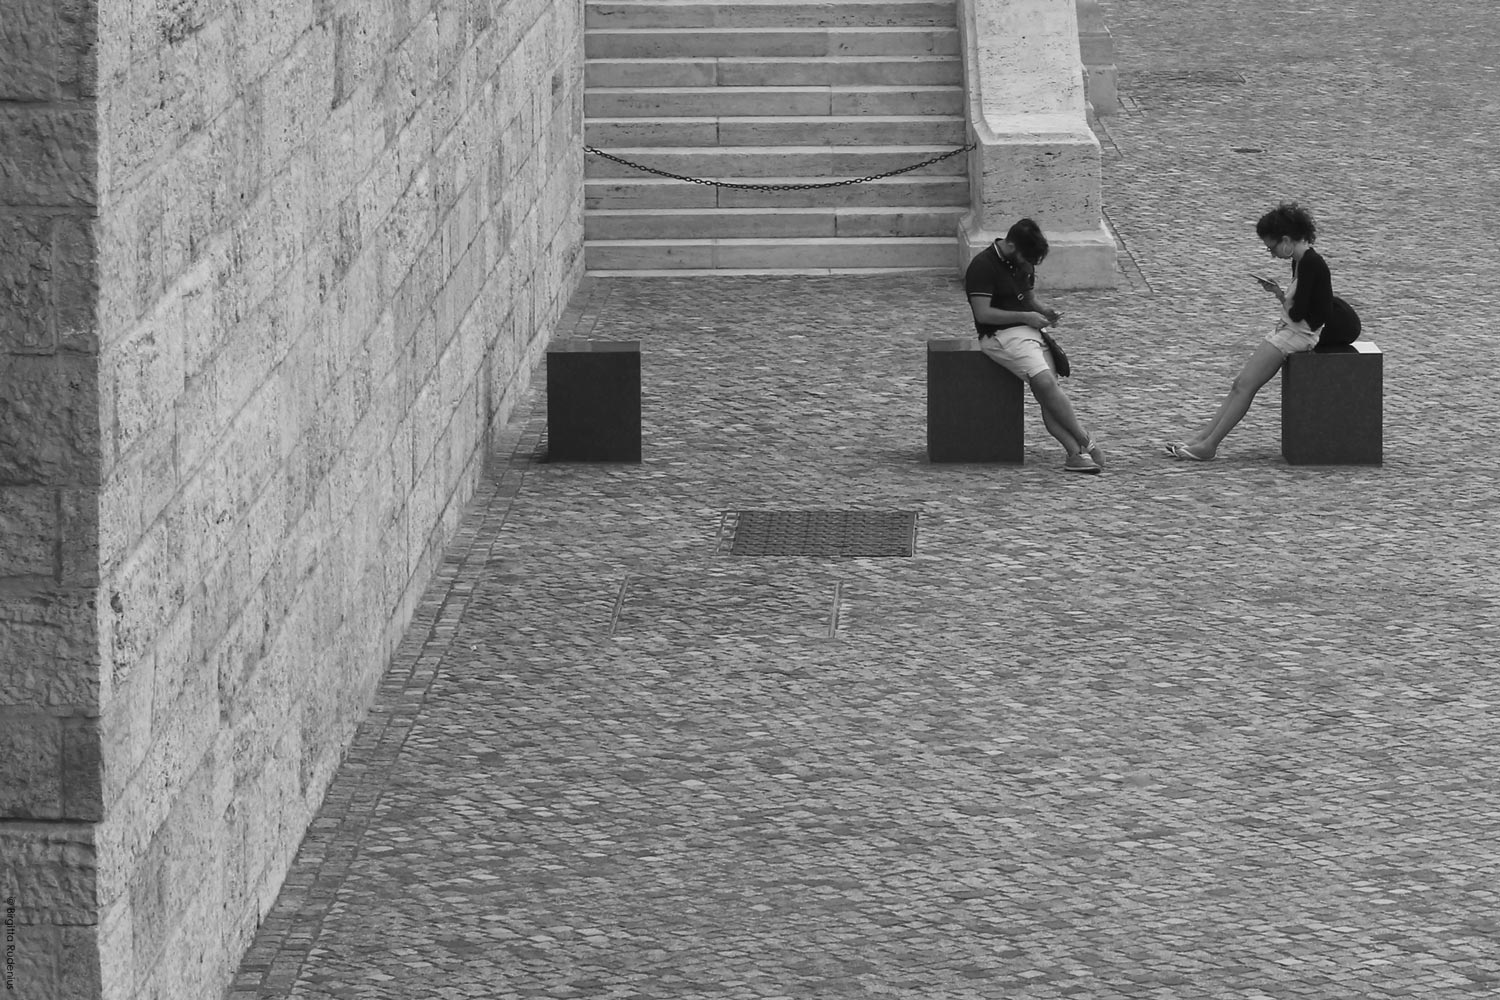 Street Photo - Alone together